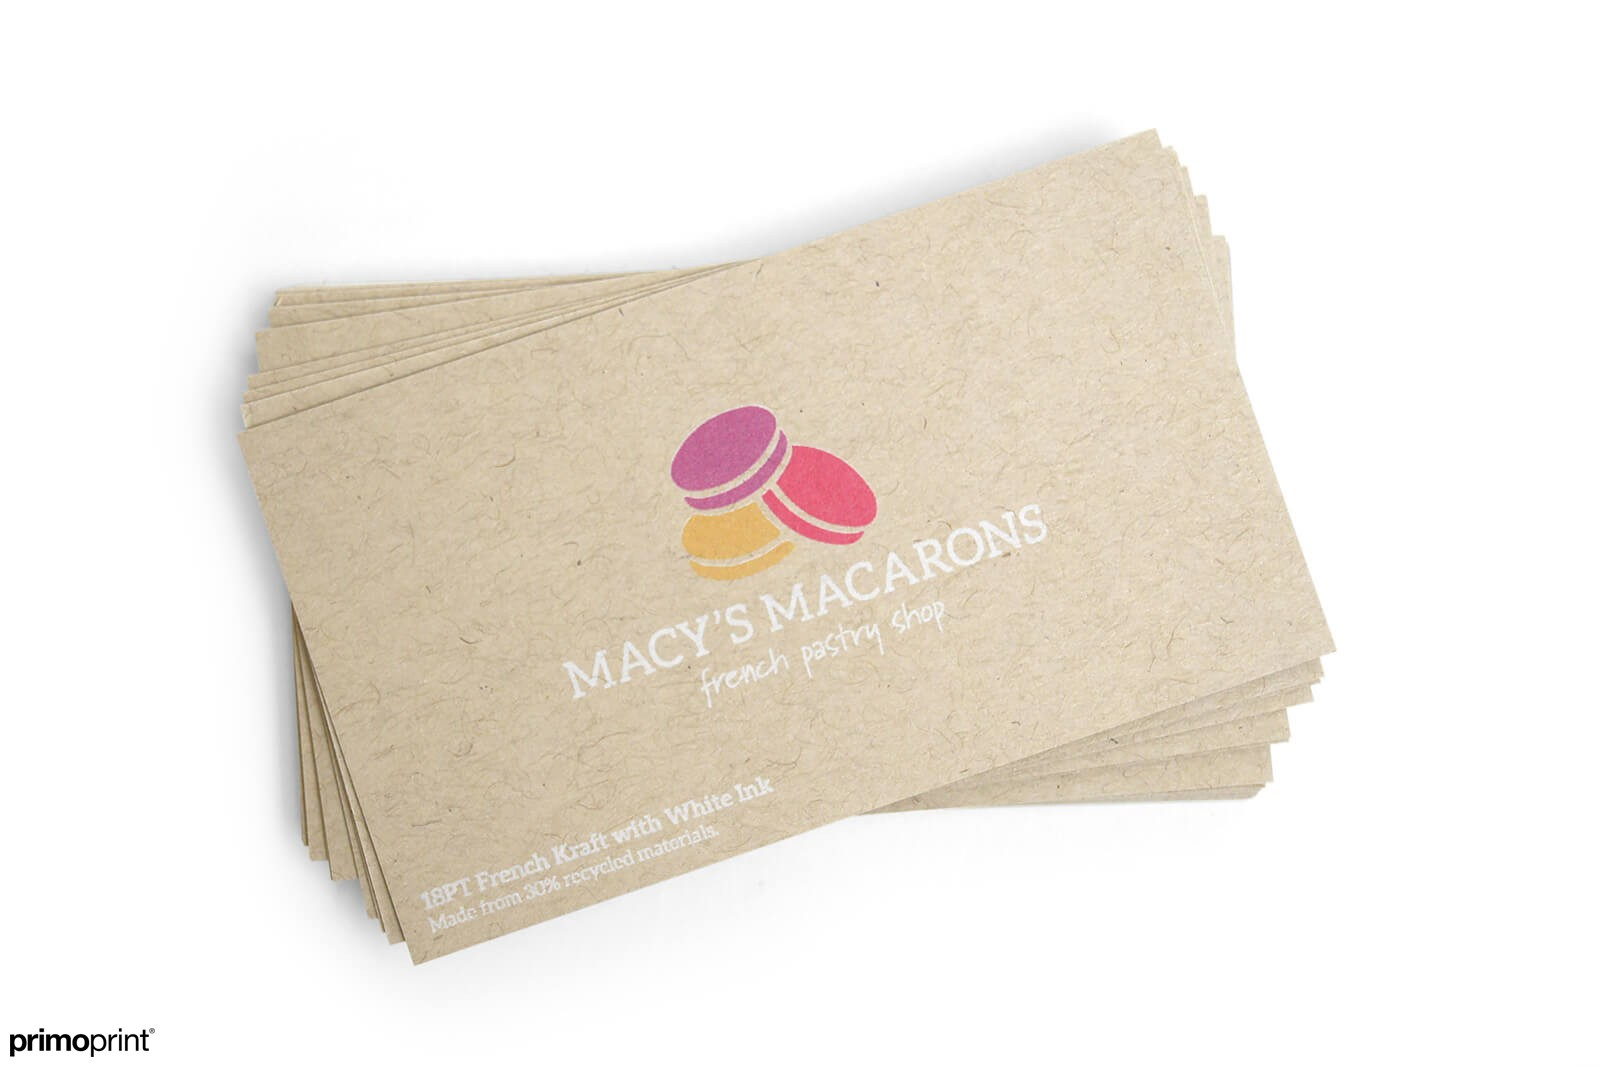 18PT uncoated Kraft business card. This card stock provides a rustic, beautiful appearance and feel. Kraft business card designed by Primoprint.